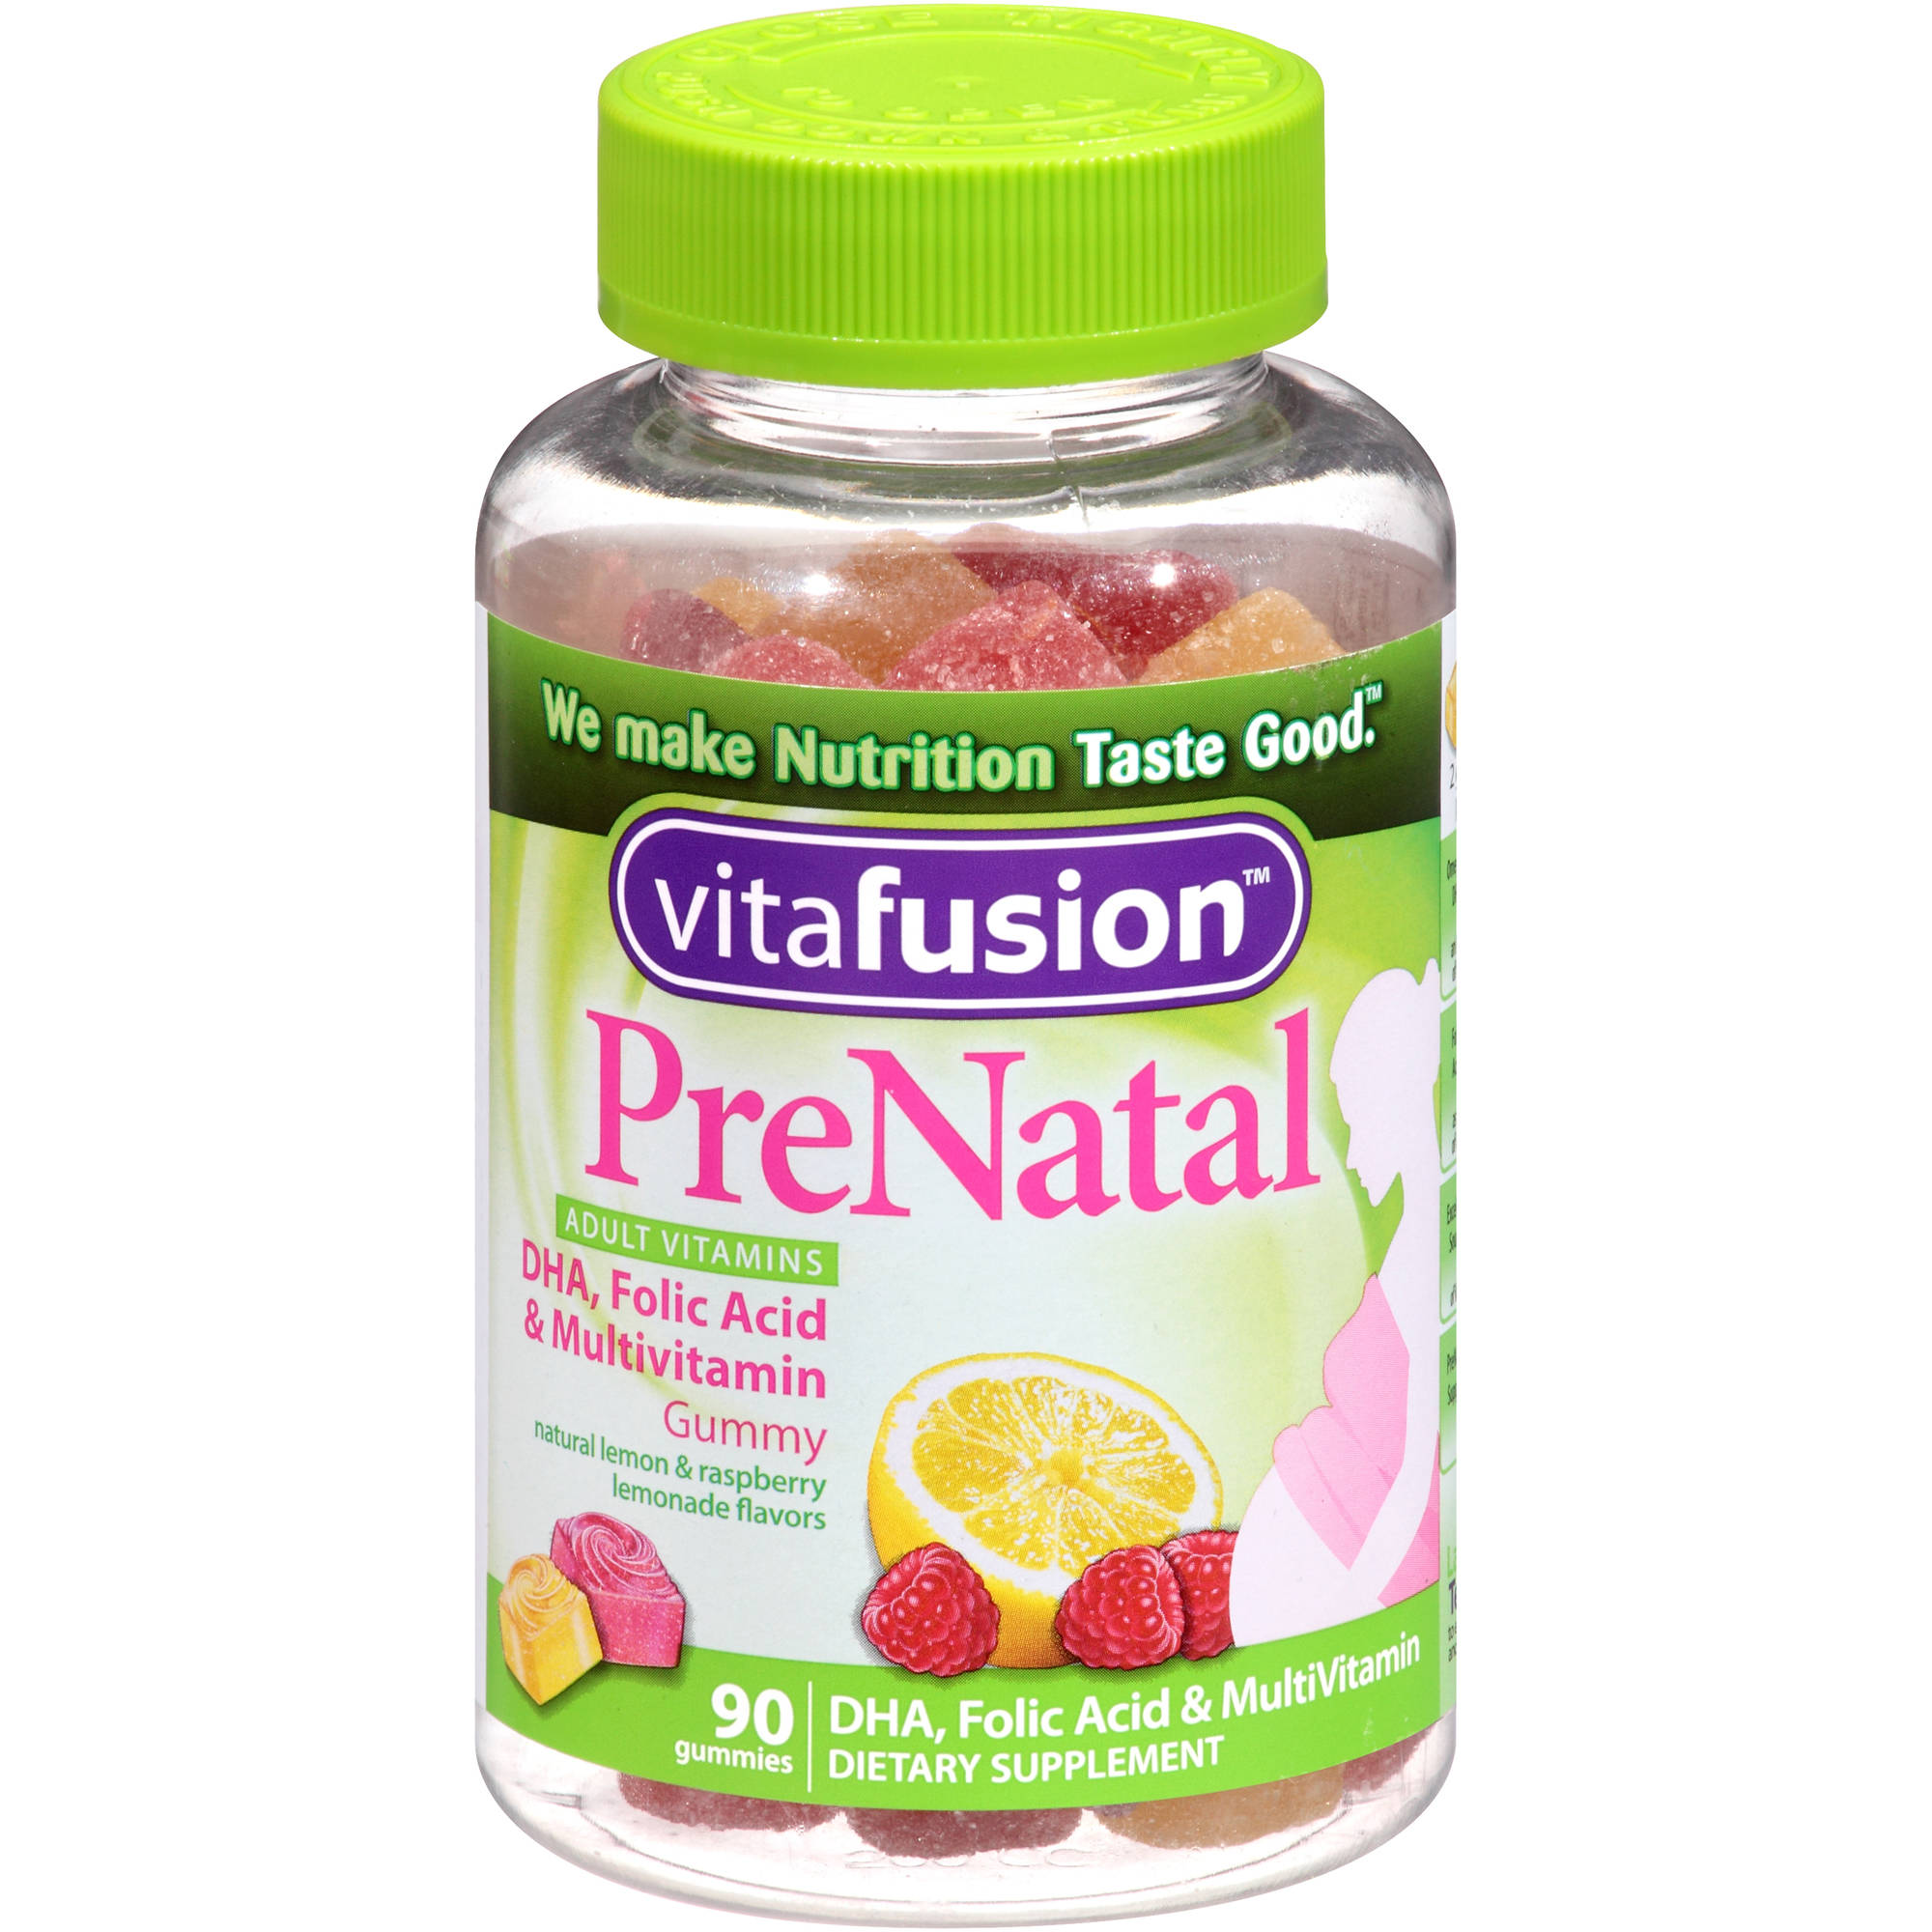 VitaFusion Prenatal Gummy Vitamins, 90ct